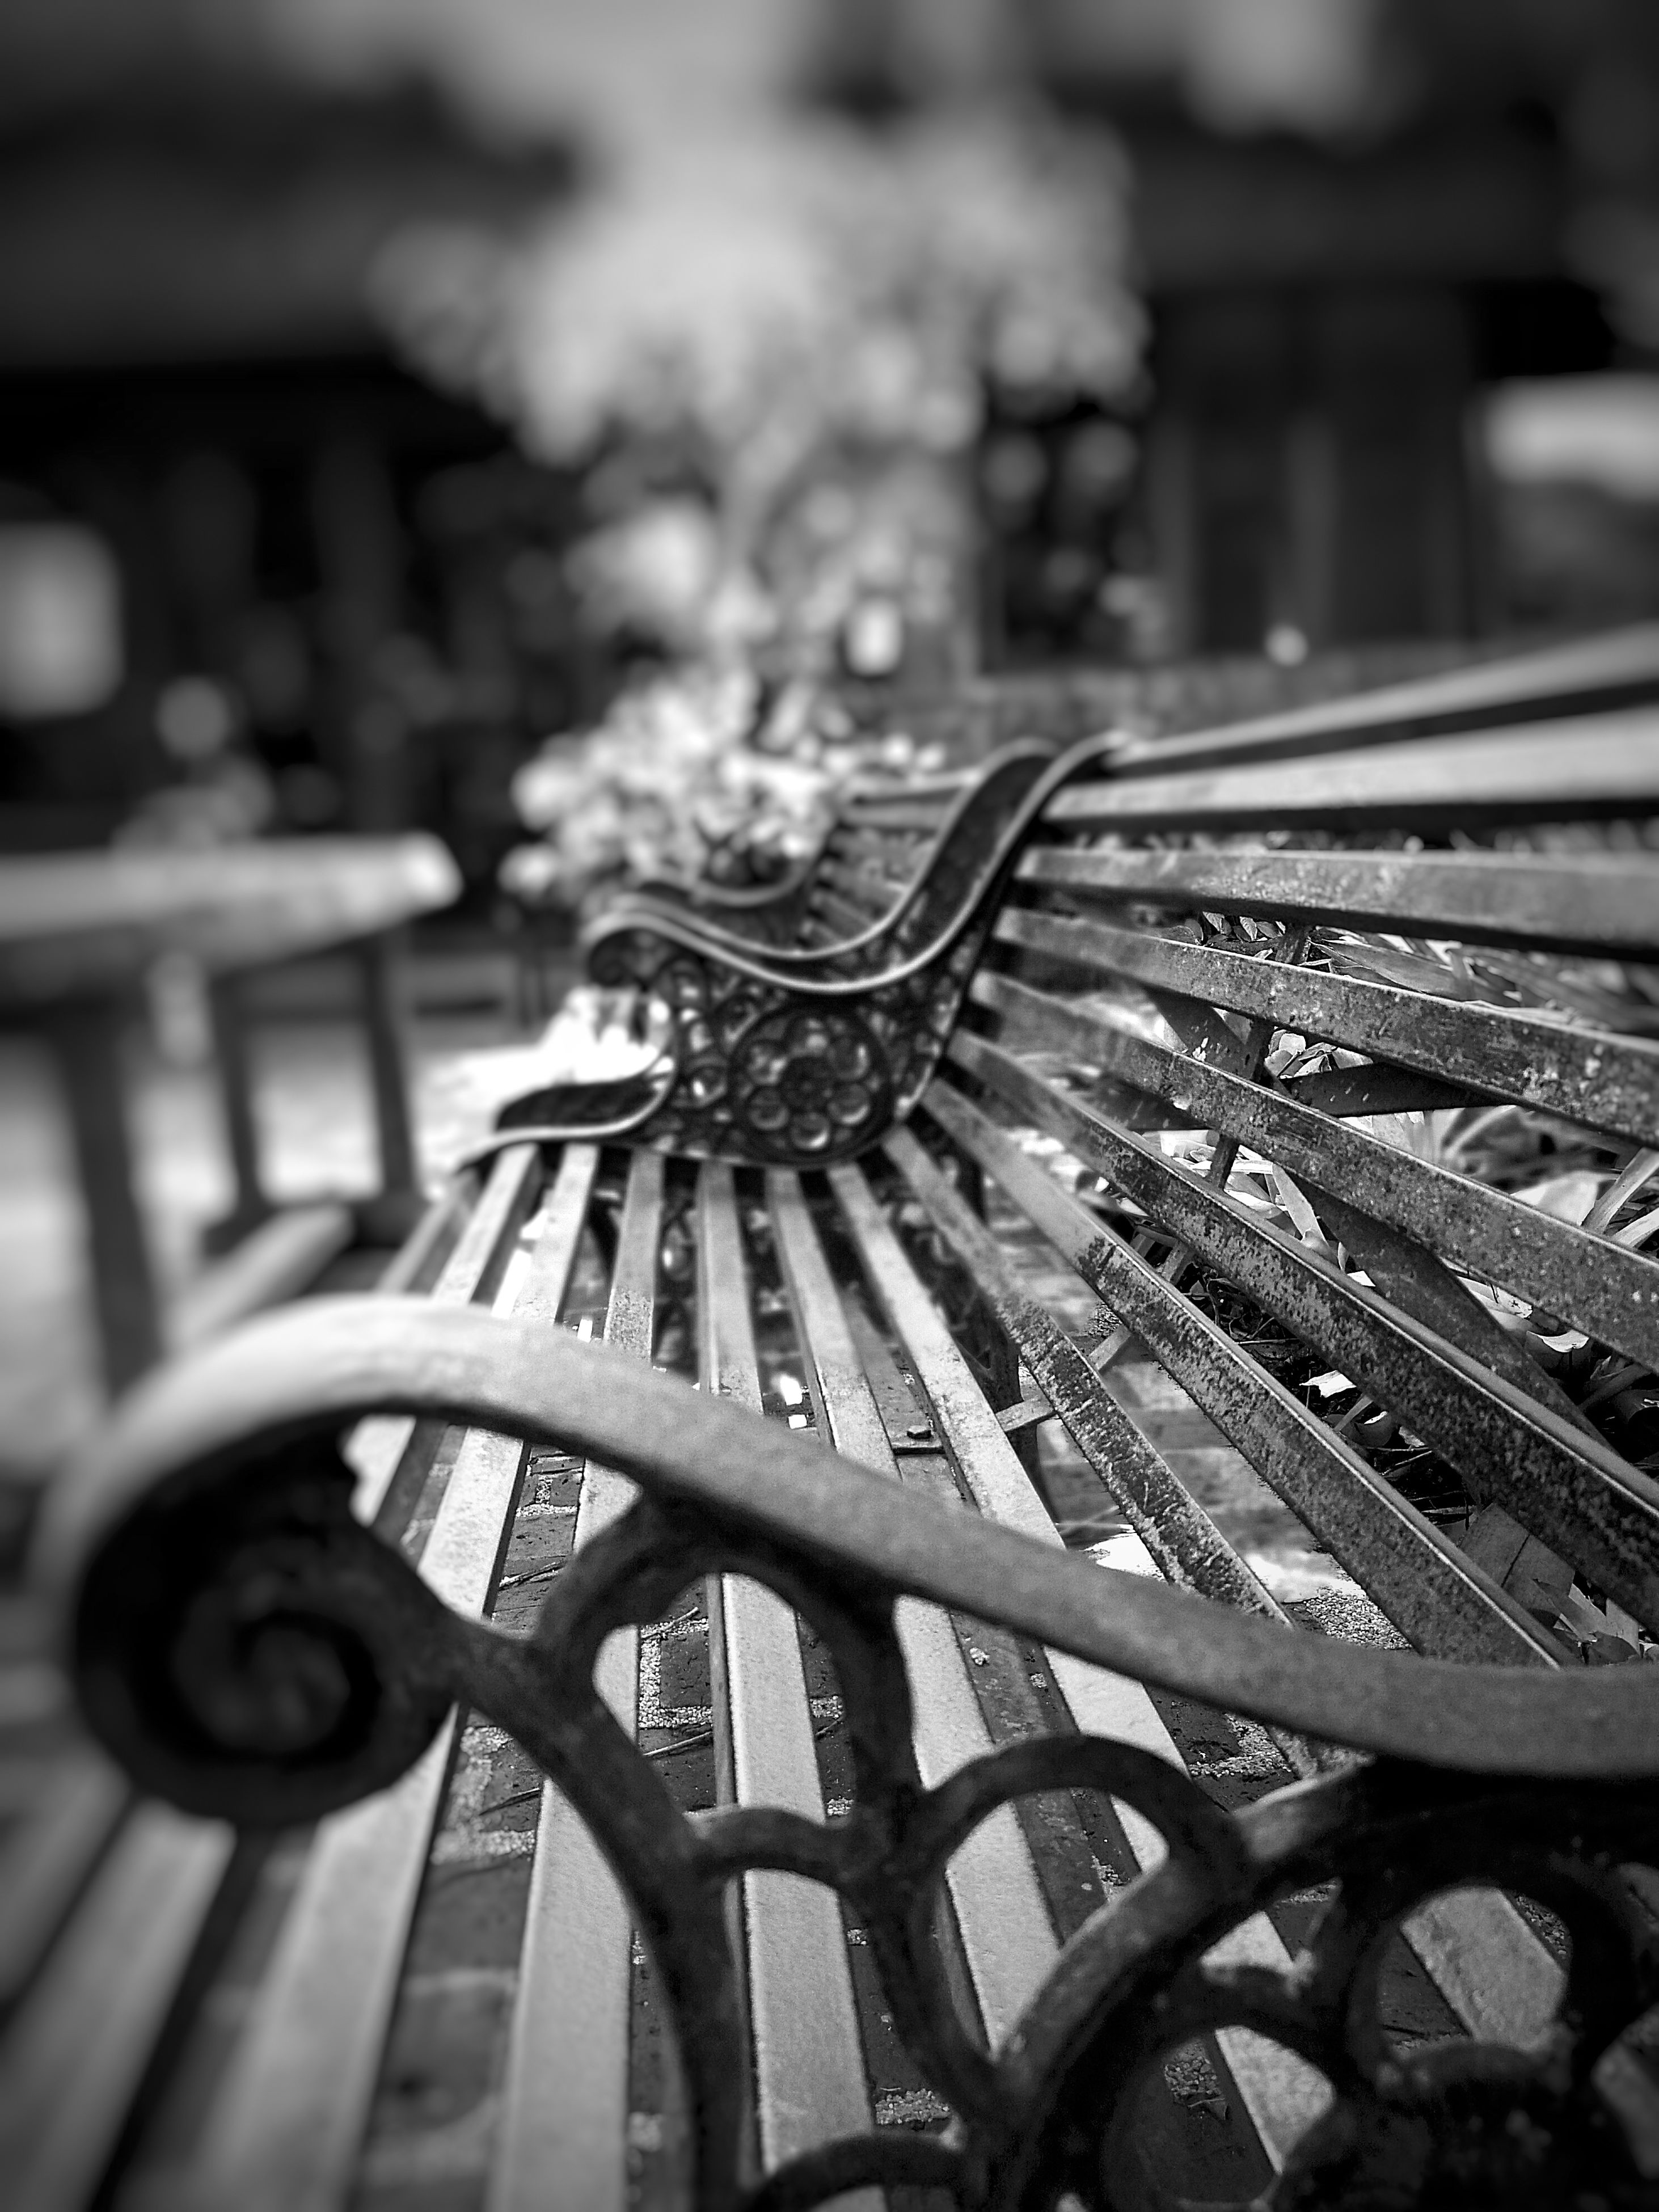 wheel, no people, focus on foreground, close-up, outdoors, day